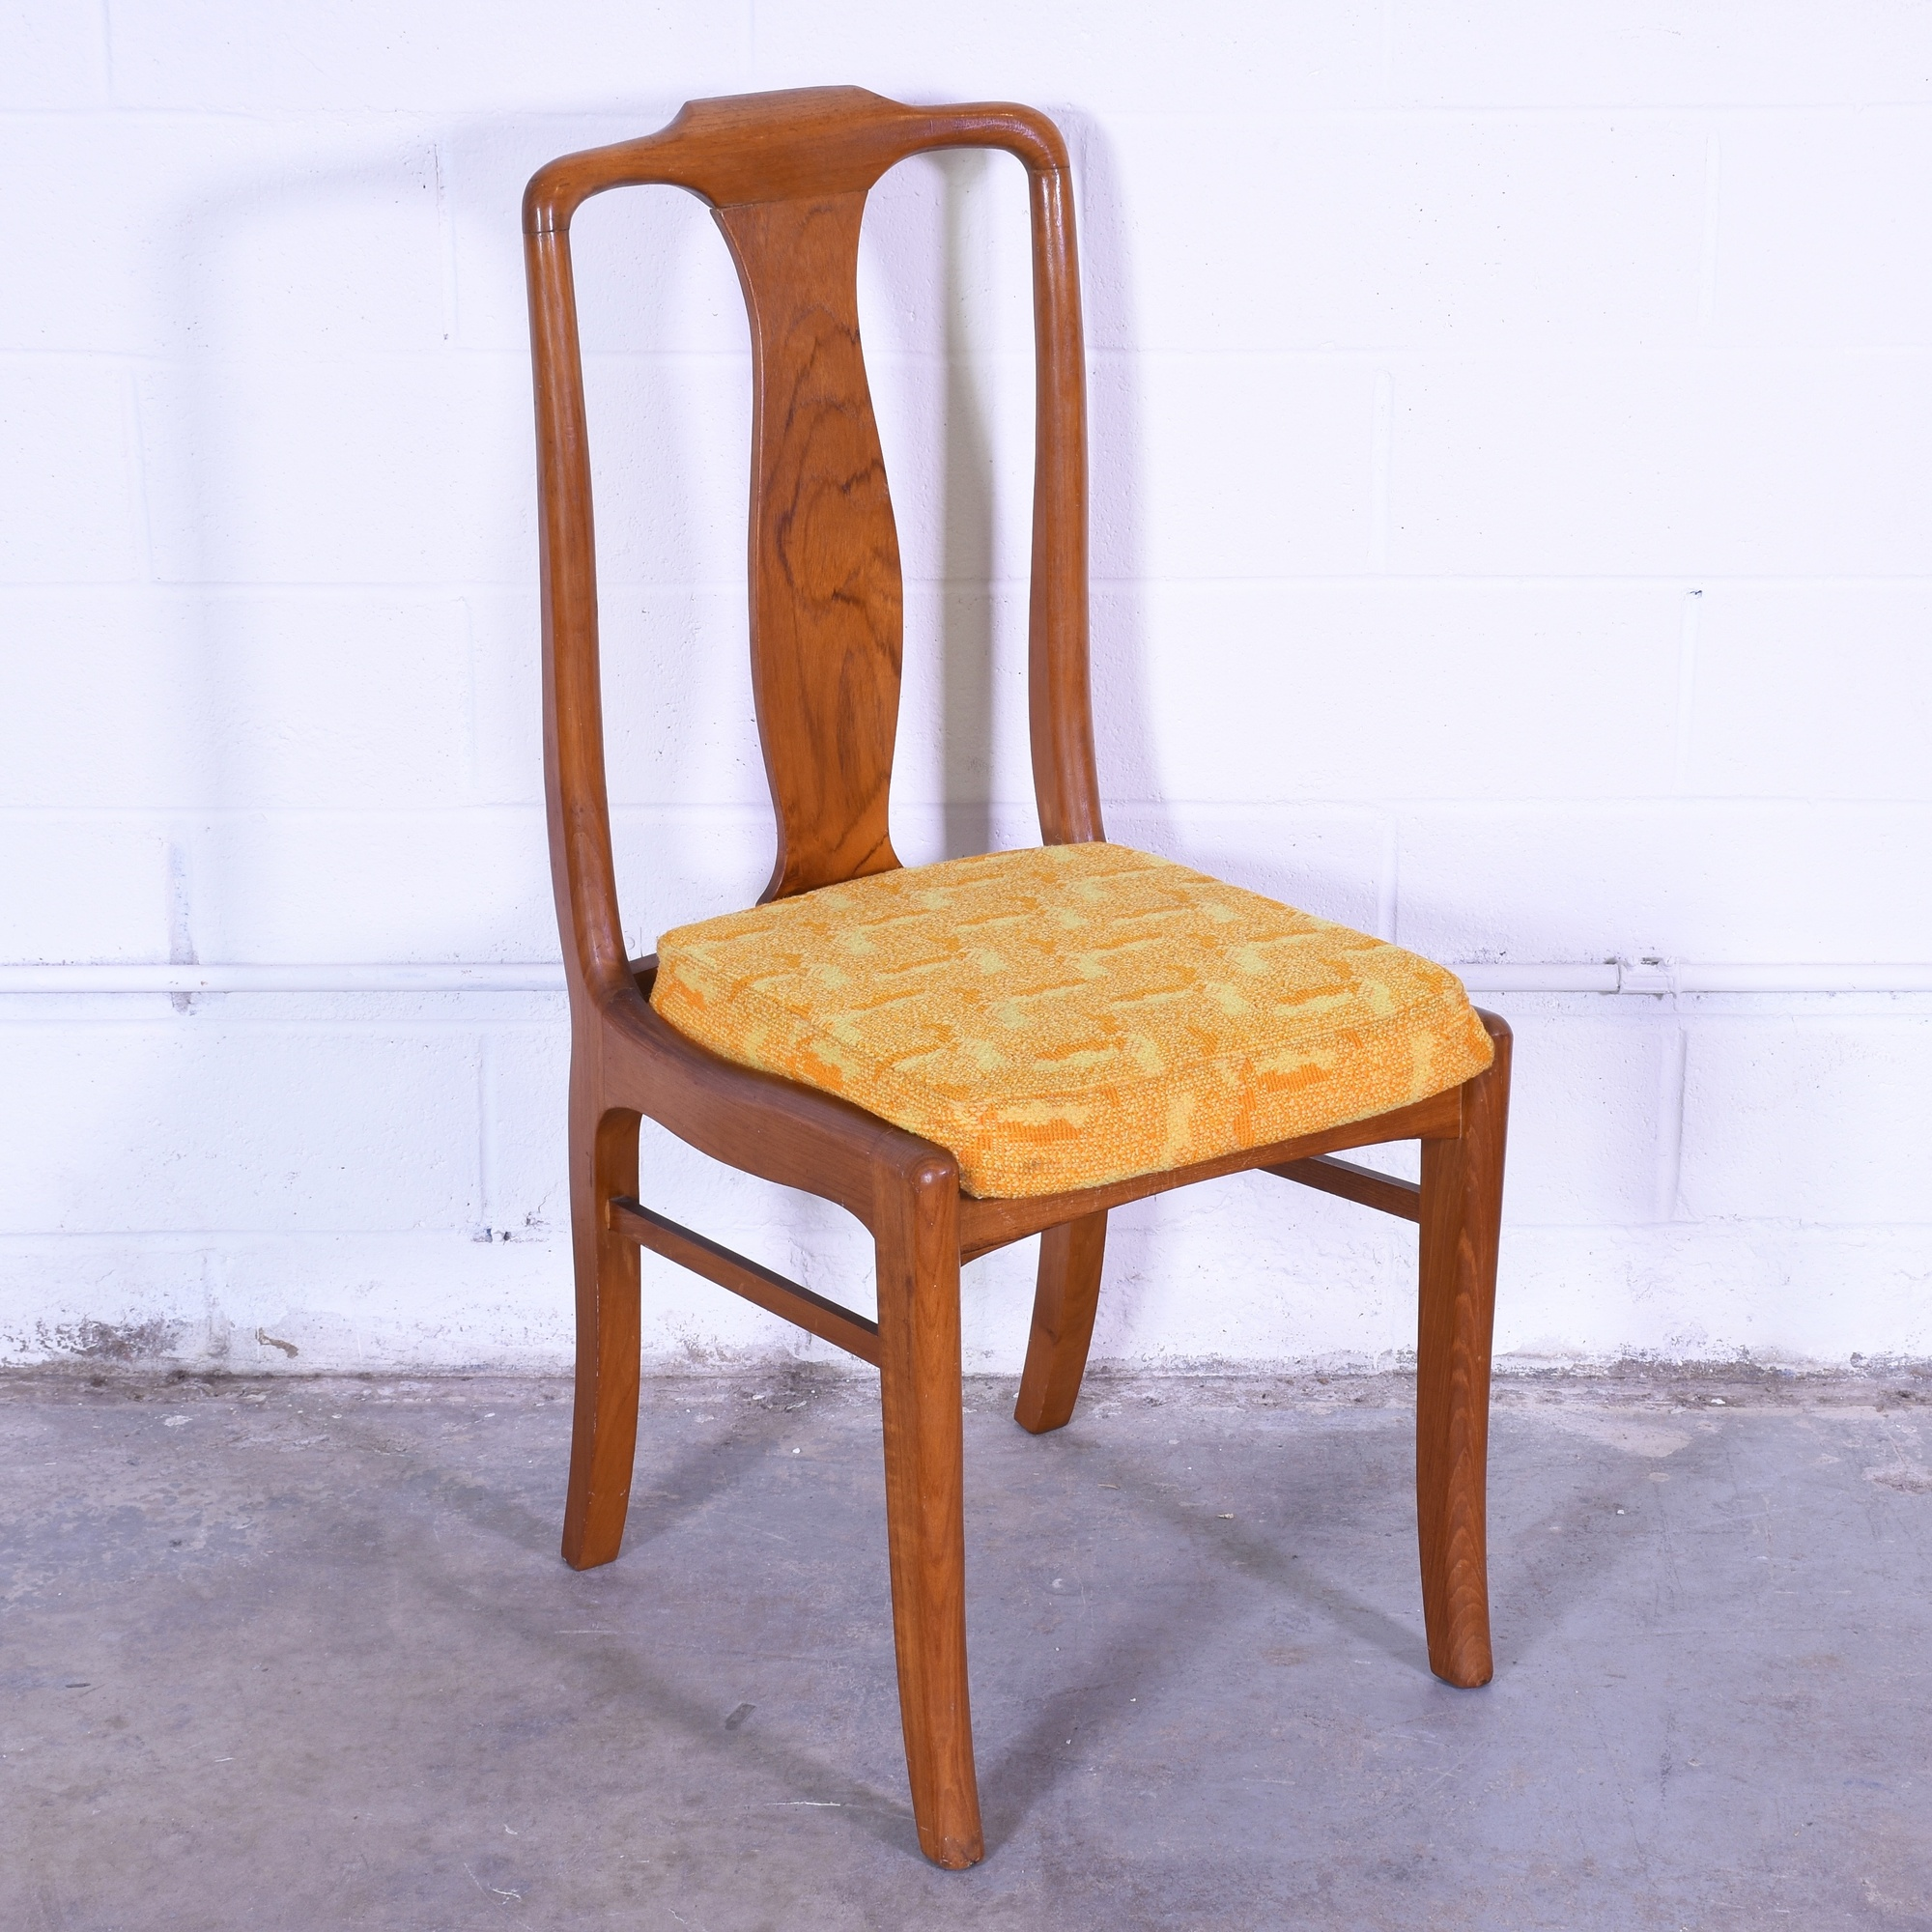 Set of 6 Retro Dining Chairs w Yellow Cushions Loveseat  : convertw2000amph2000ampfitcropamprotateexif from www.loveseat.com size 2000 x 2000 jpeg 352kB